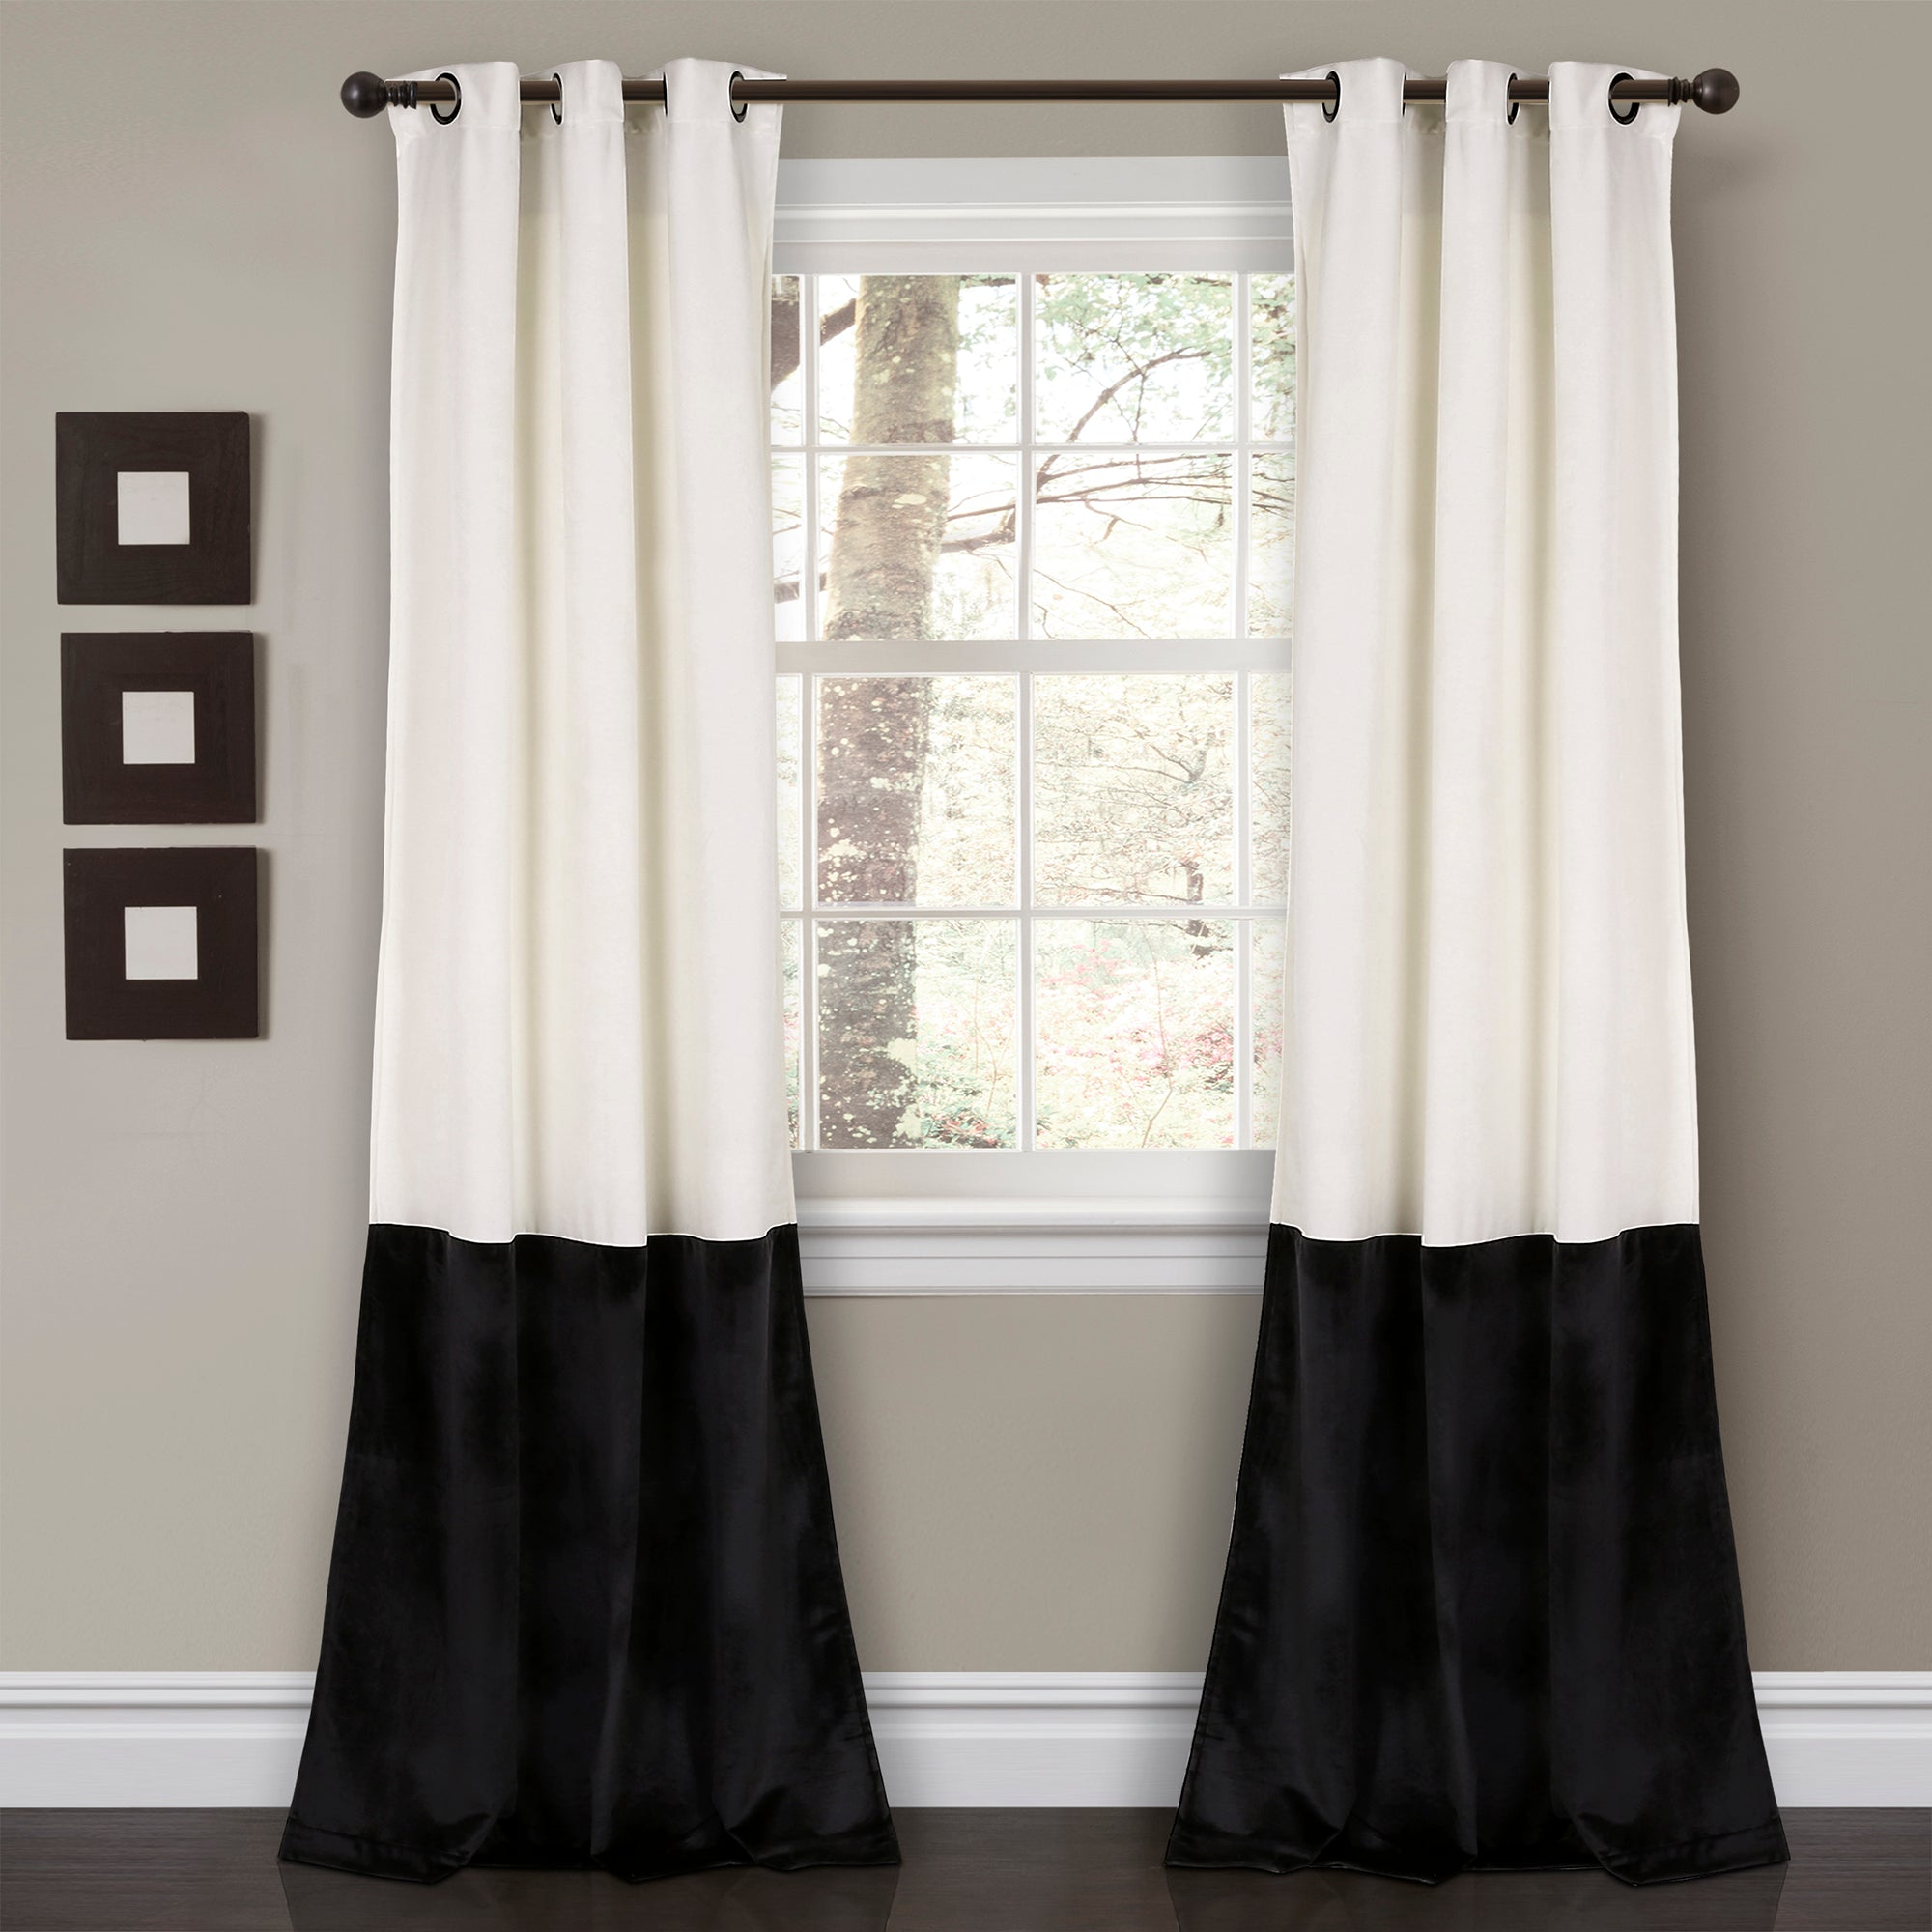 curtains blue of full designer unbelievable with pictures panels blackout navy wallpaper brown curtain size tab living grommet room topnavy wooden ideas velvet